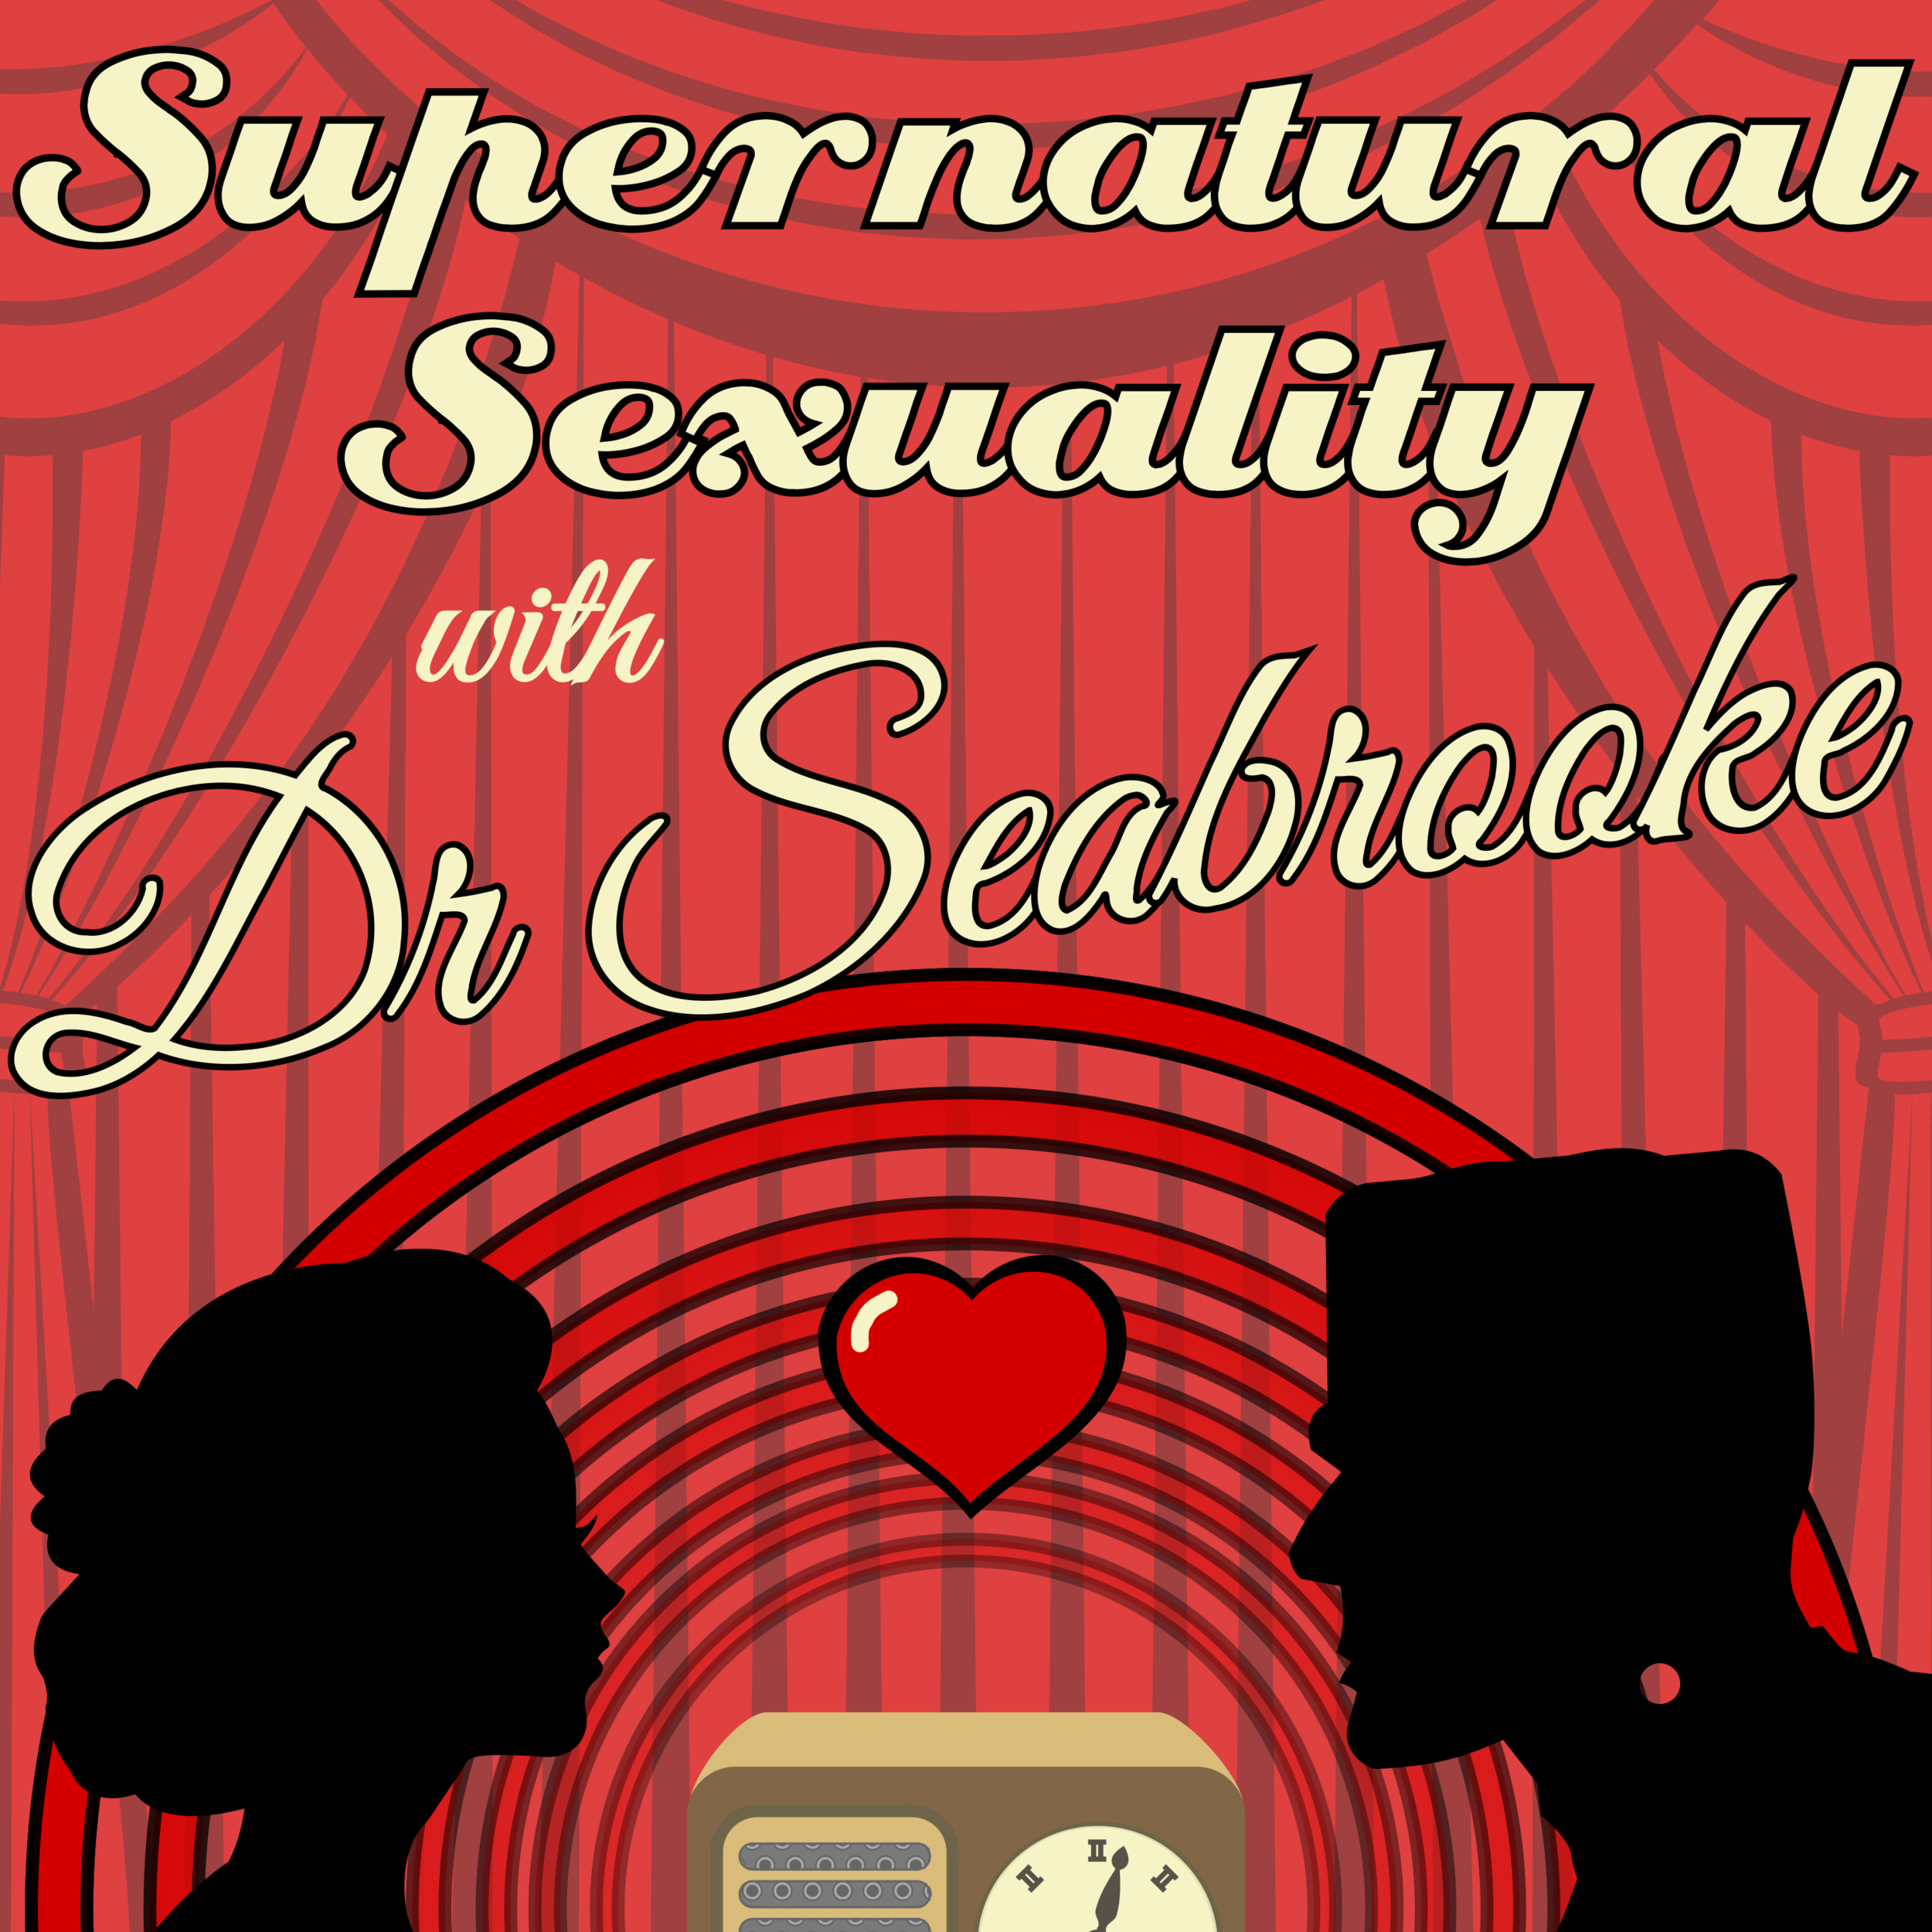 The cover art for Supernatural Sexuality with Dr Seabrooke.